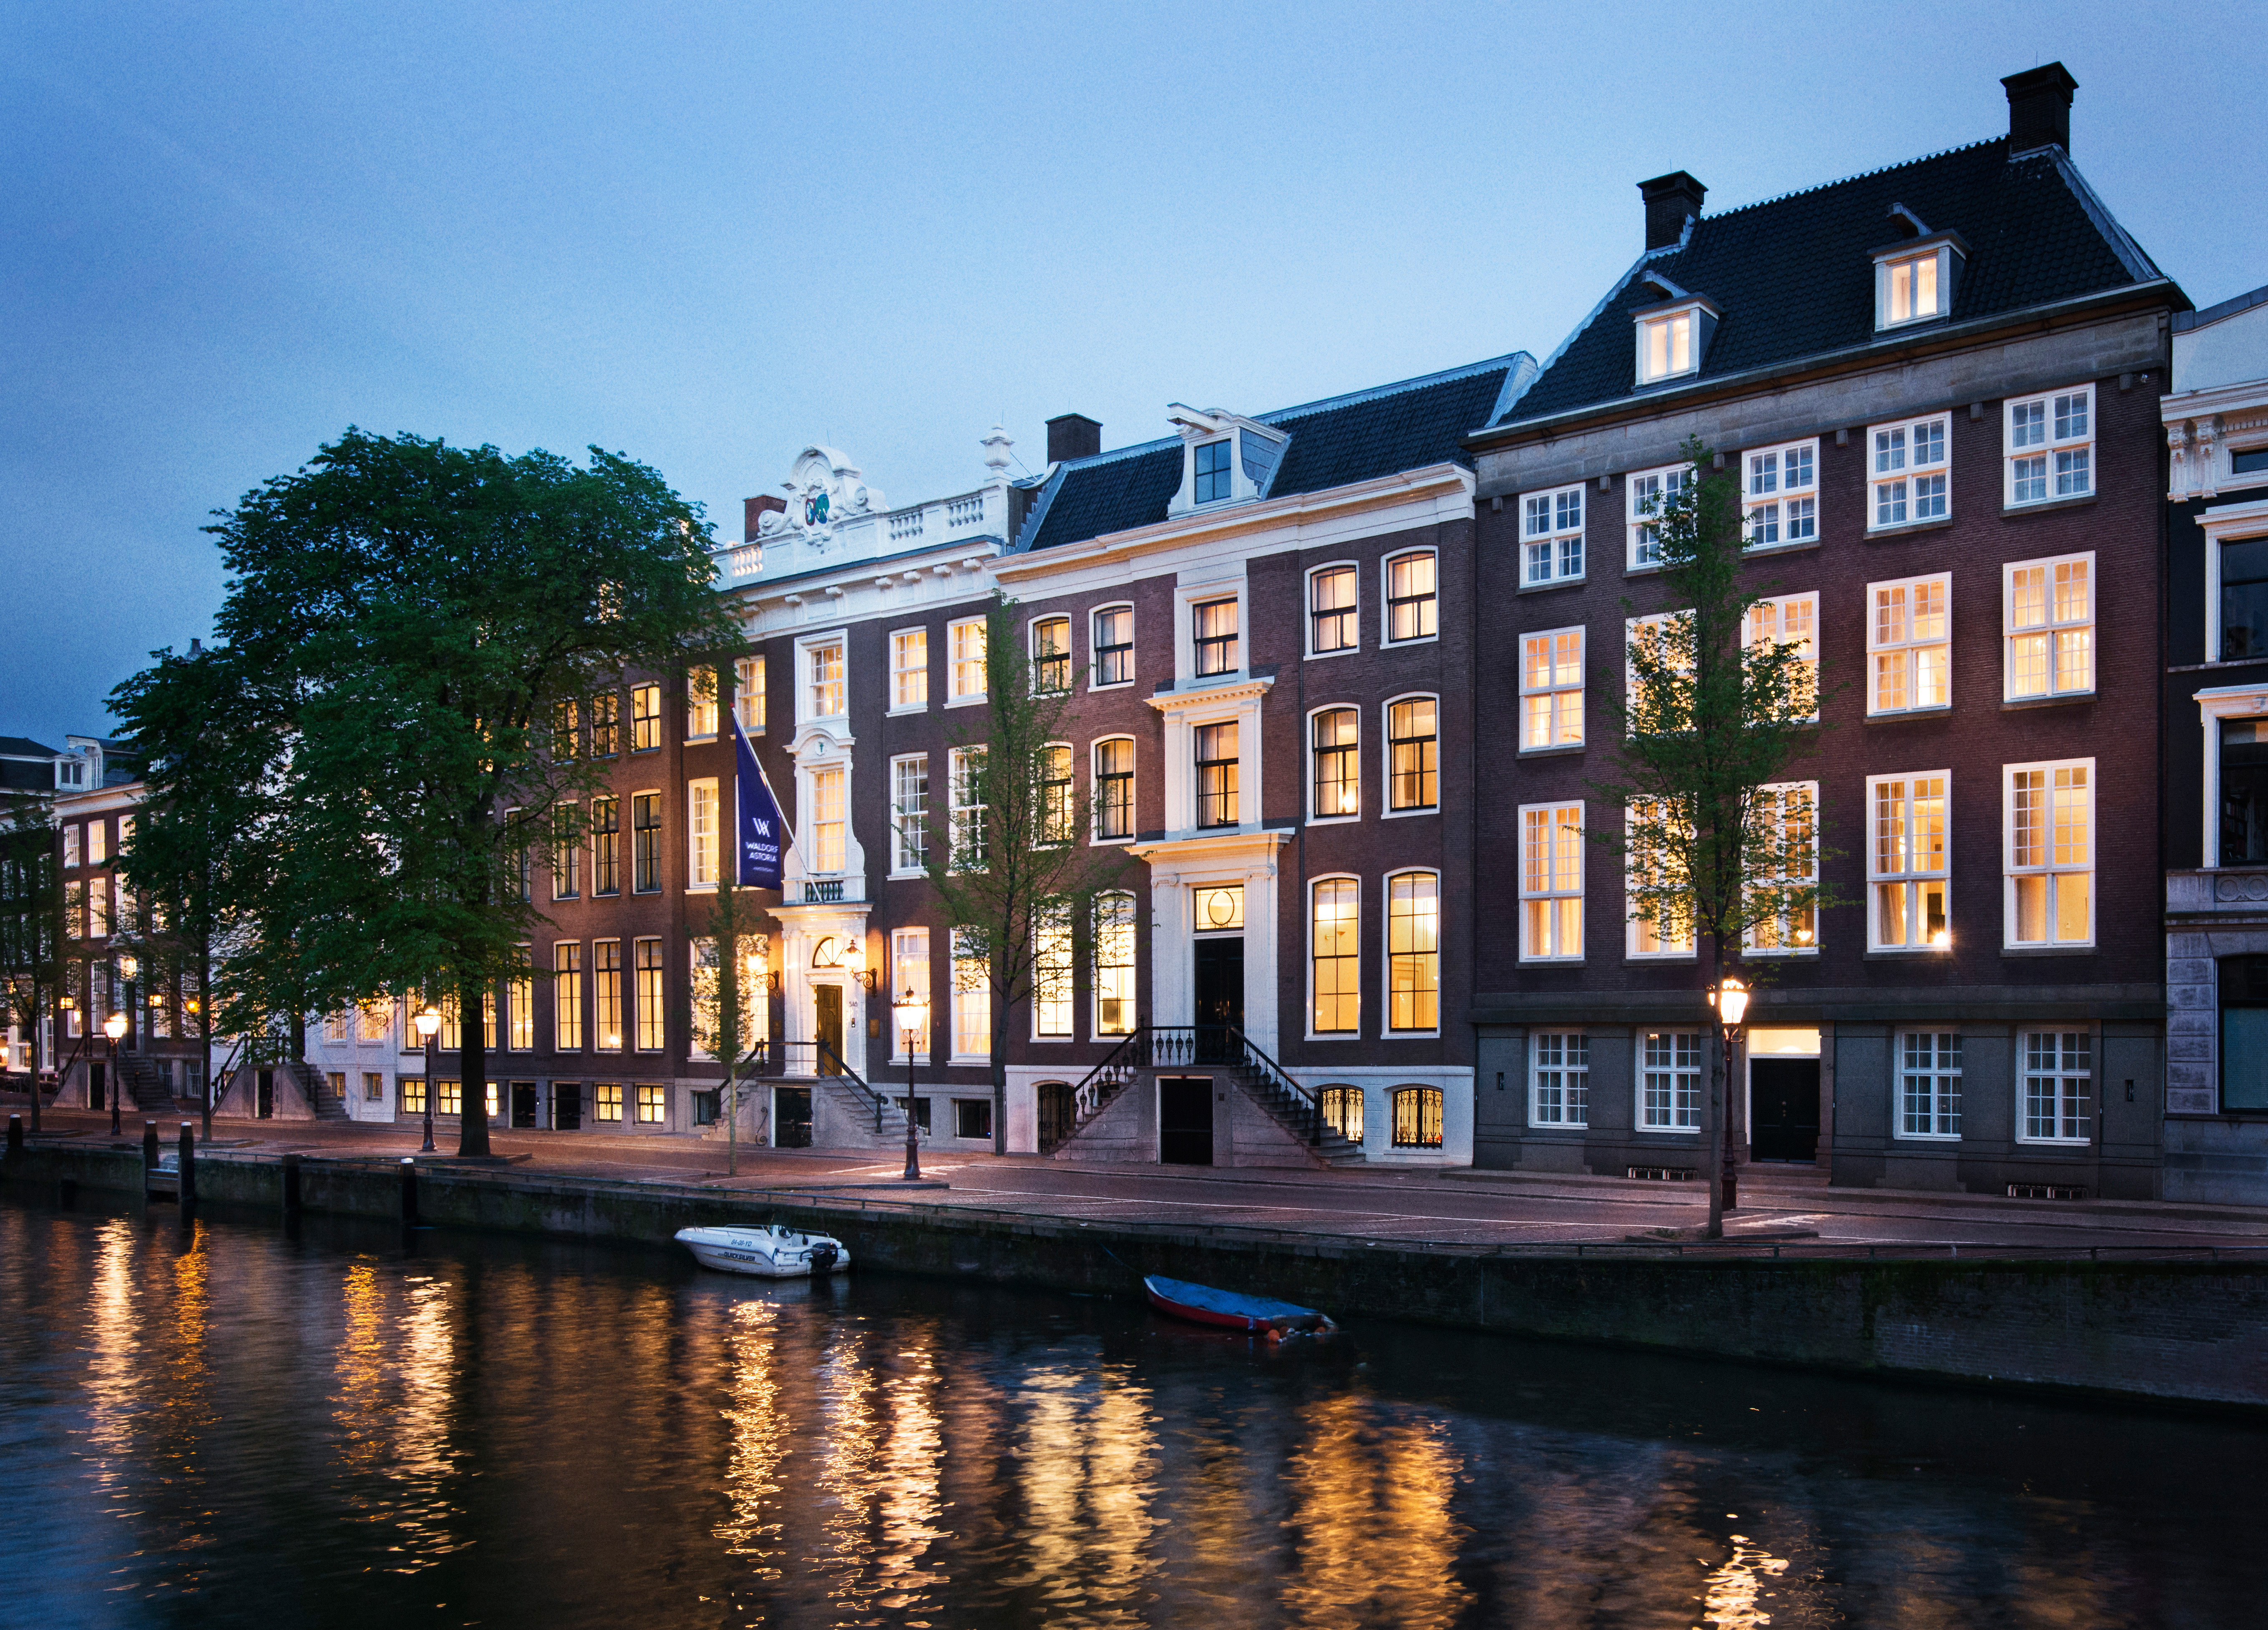 Amsterdam Architecture Buildings City Elegant Exterior Family Hotels Luxury Romantic The Netherlands Waterfront sky building outdoor water Canal waterway body of water Town landmark reflection house evening estate cityscape several